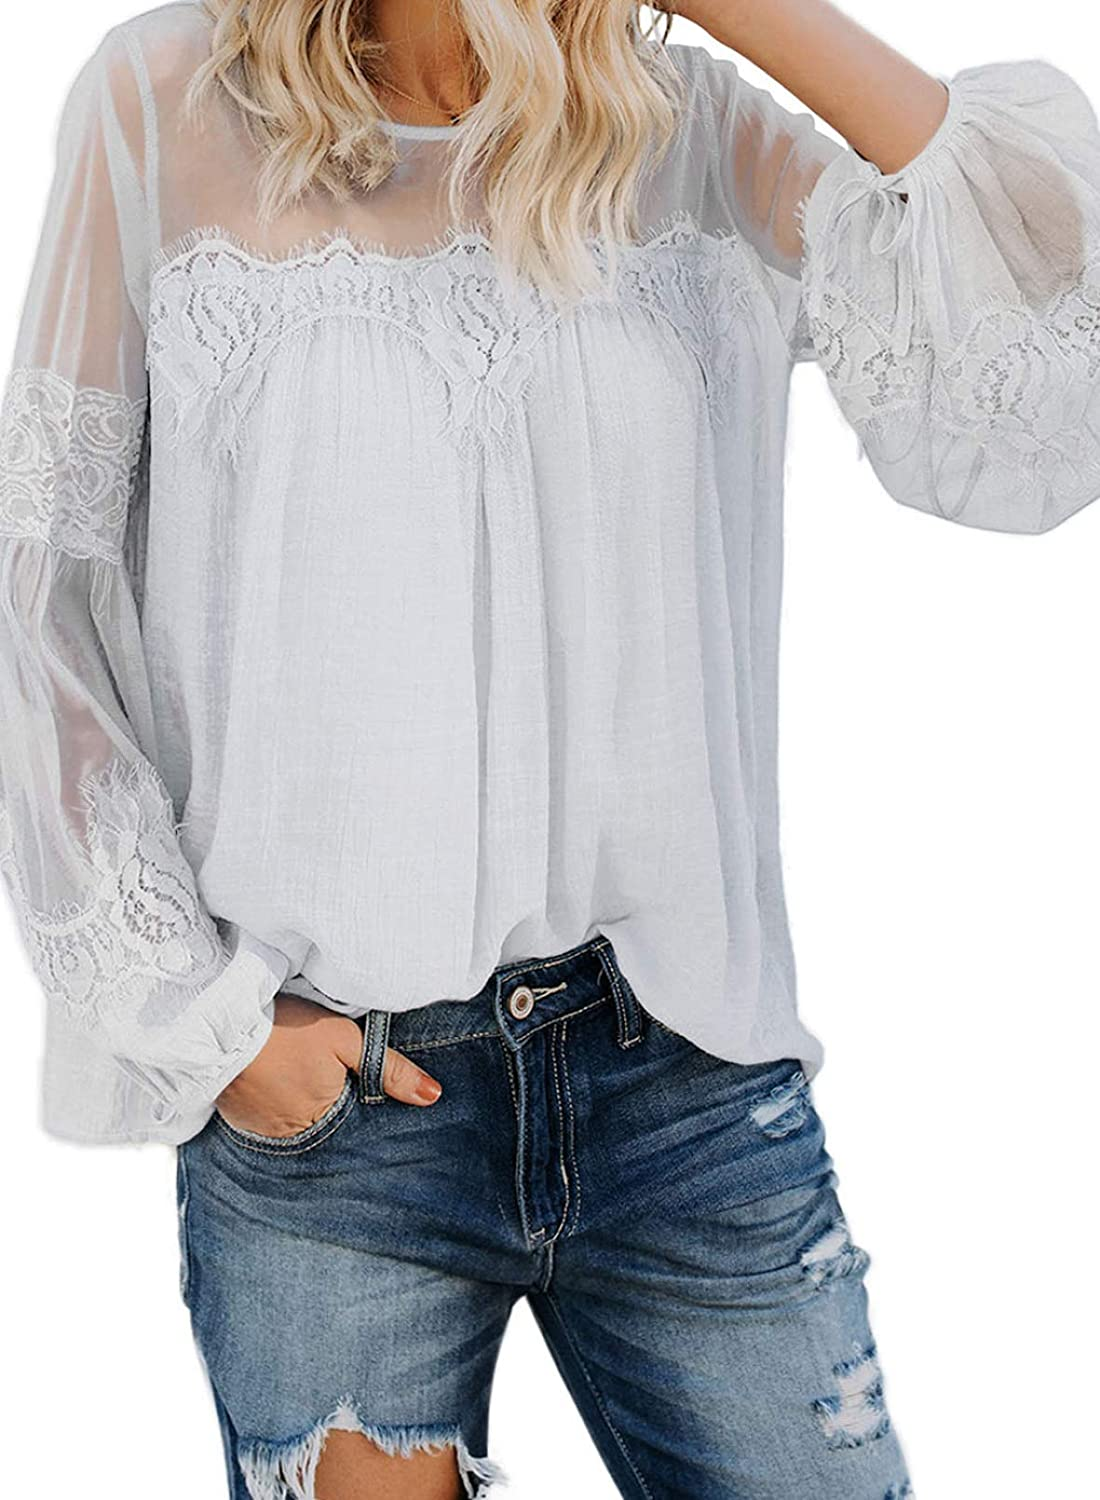 Biucly Womens Casual Lace Crochet Blouses Lantern Long Sleeve Shirts Loose Tops (S-XXL)